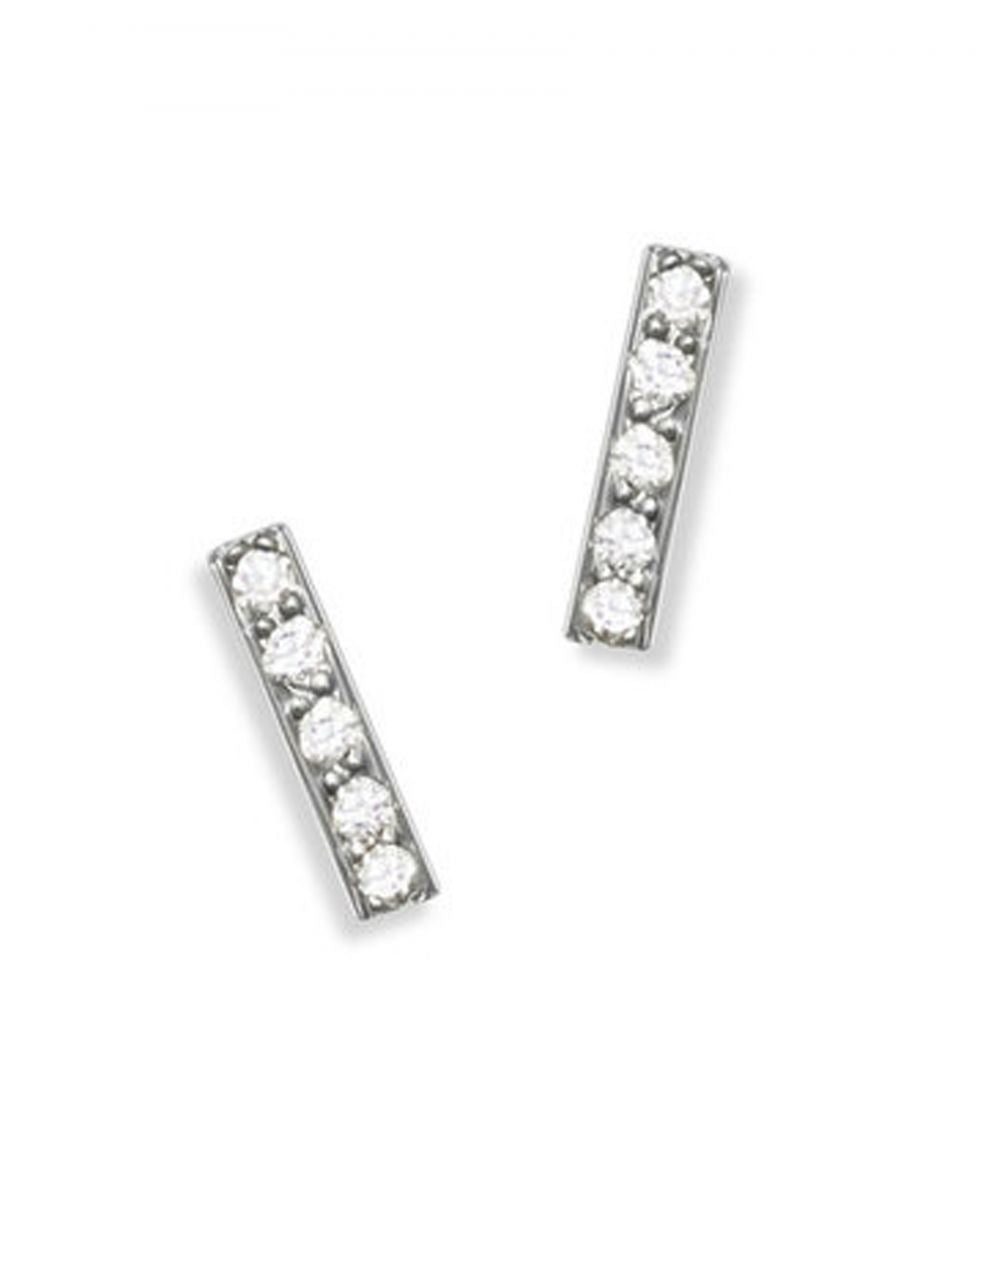 Mini Pavé Bar Stud<br /><i><small>14K White Gold with White Diamonds</small></i><br />